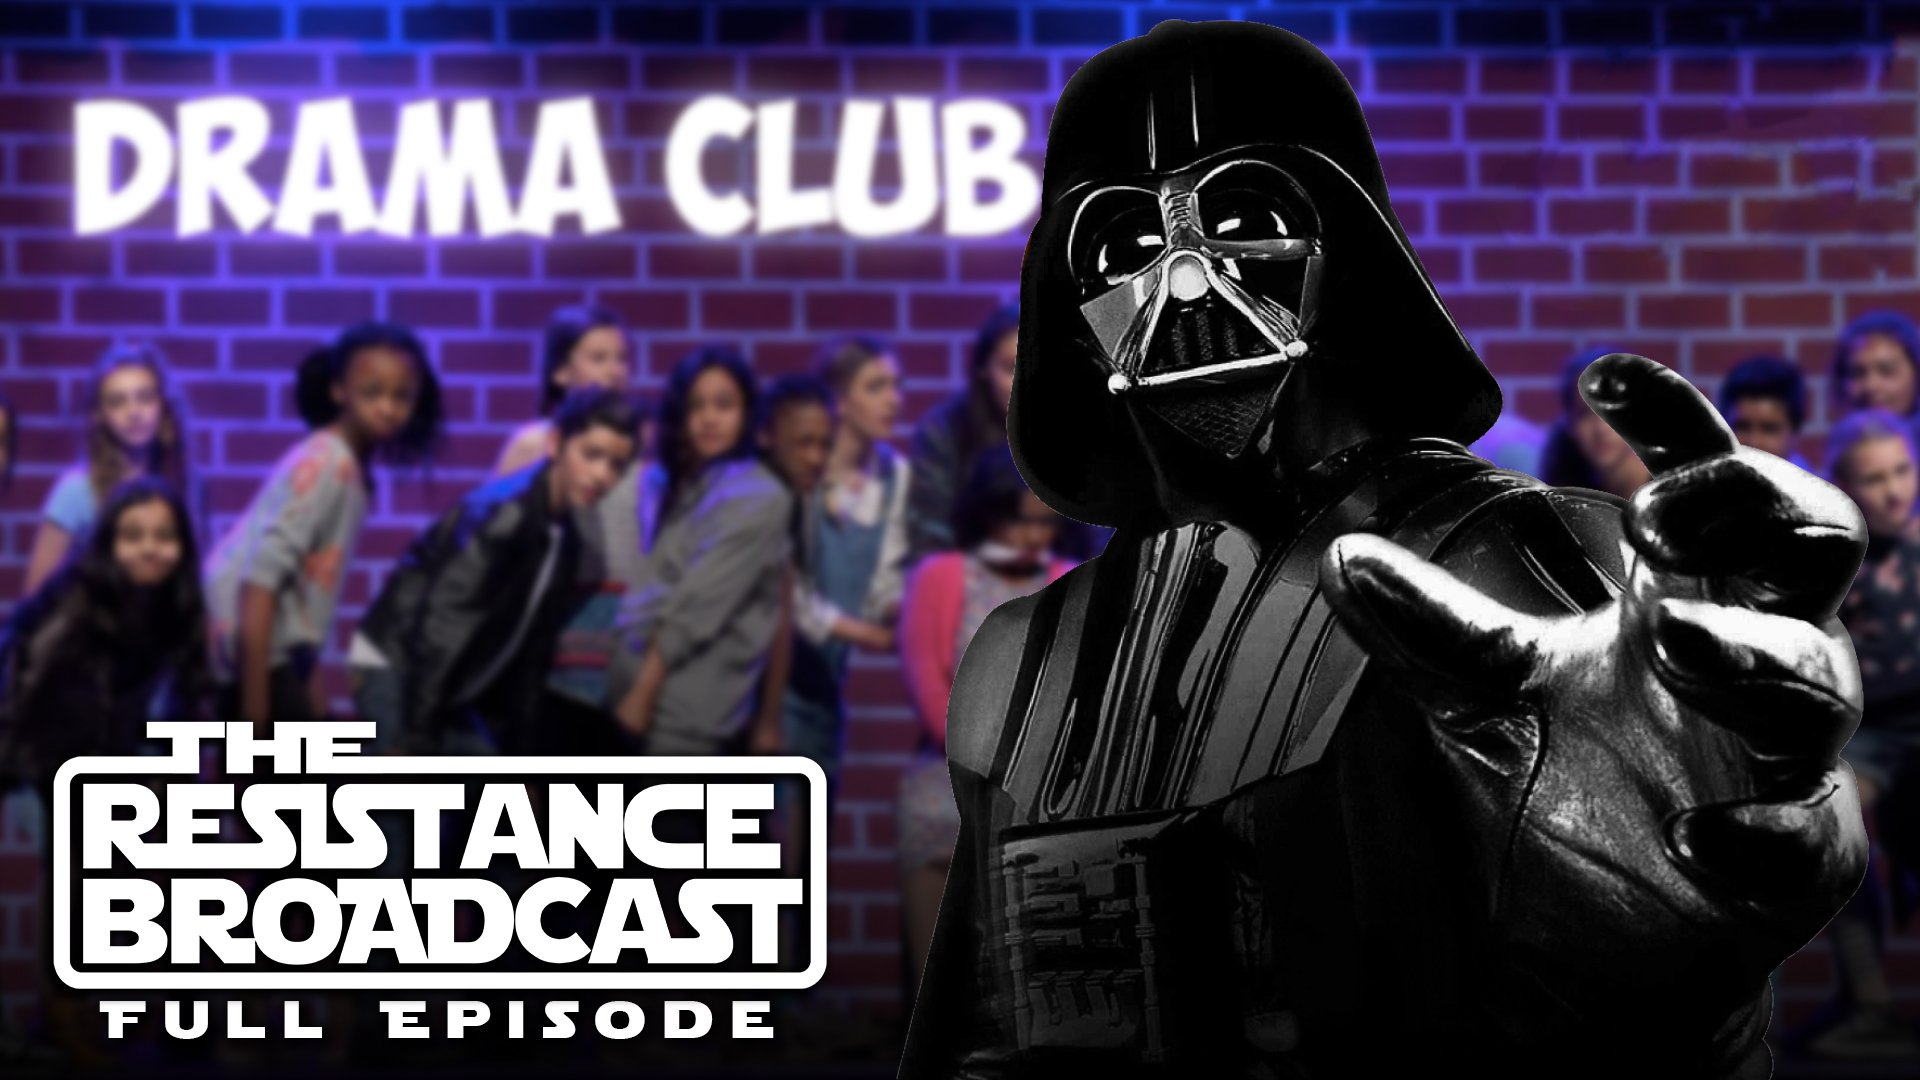 The Resistance Broadcast - How Dramatic is Darth Vader? - Star Wars